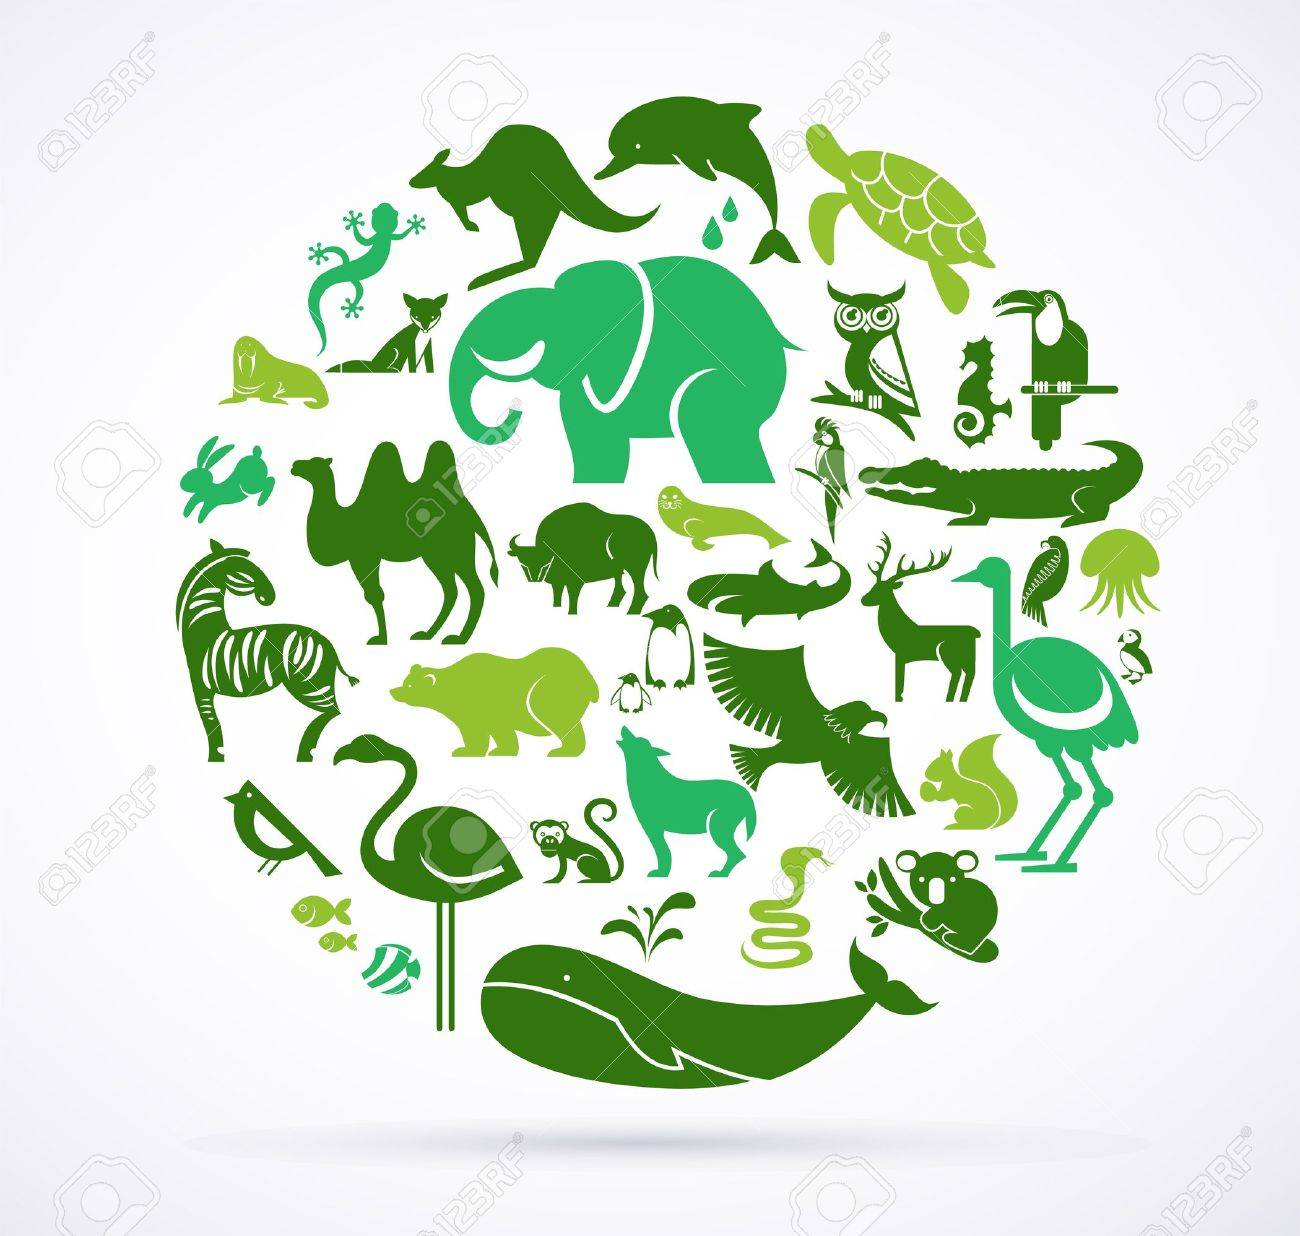 Animal green world - huge collection of icons Stock Vector - 20312641